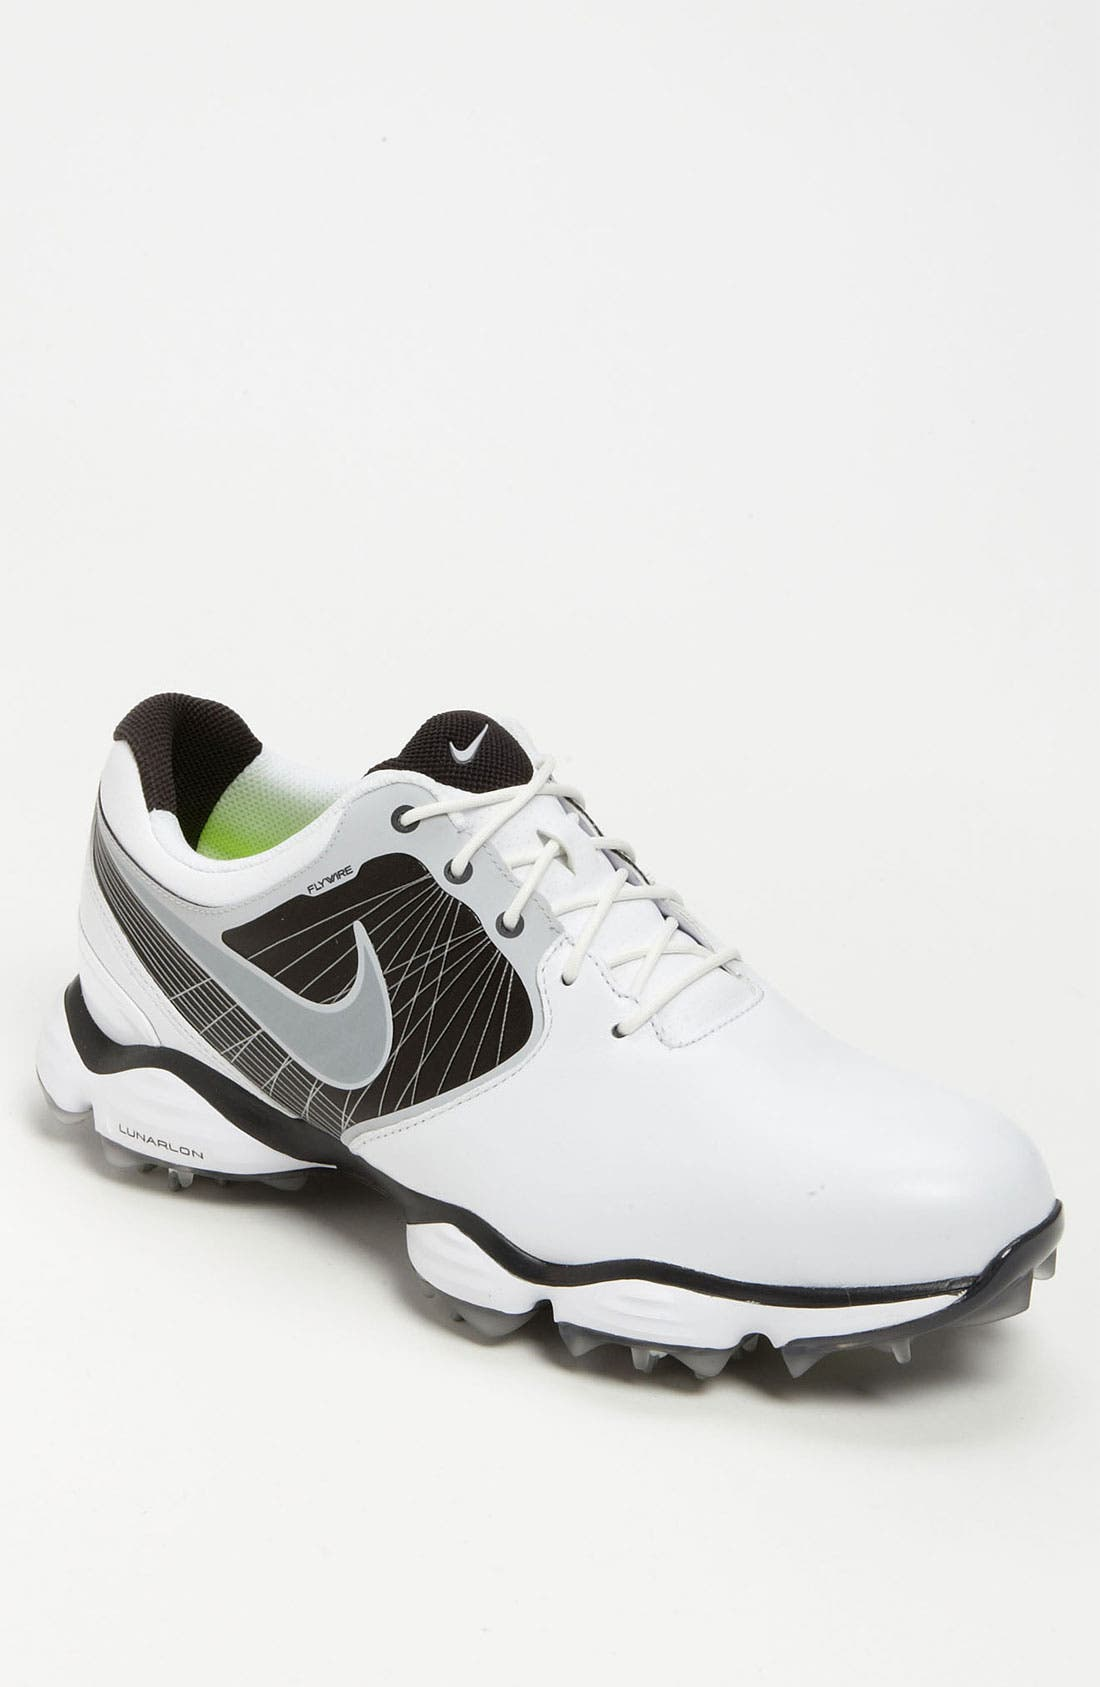 Main Image - Nike 'Lunar Control II' Golf Shoe (Men)